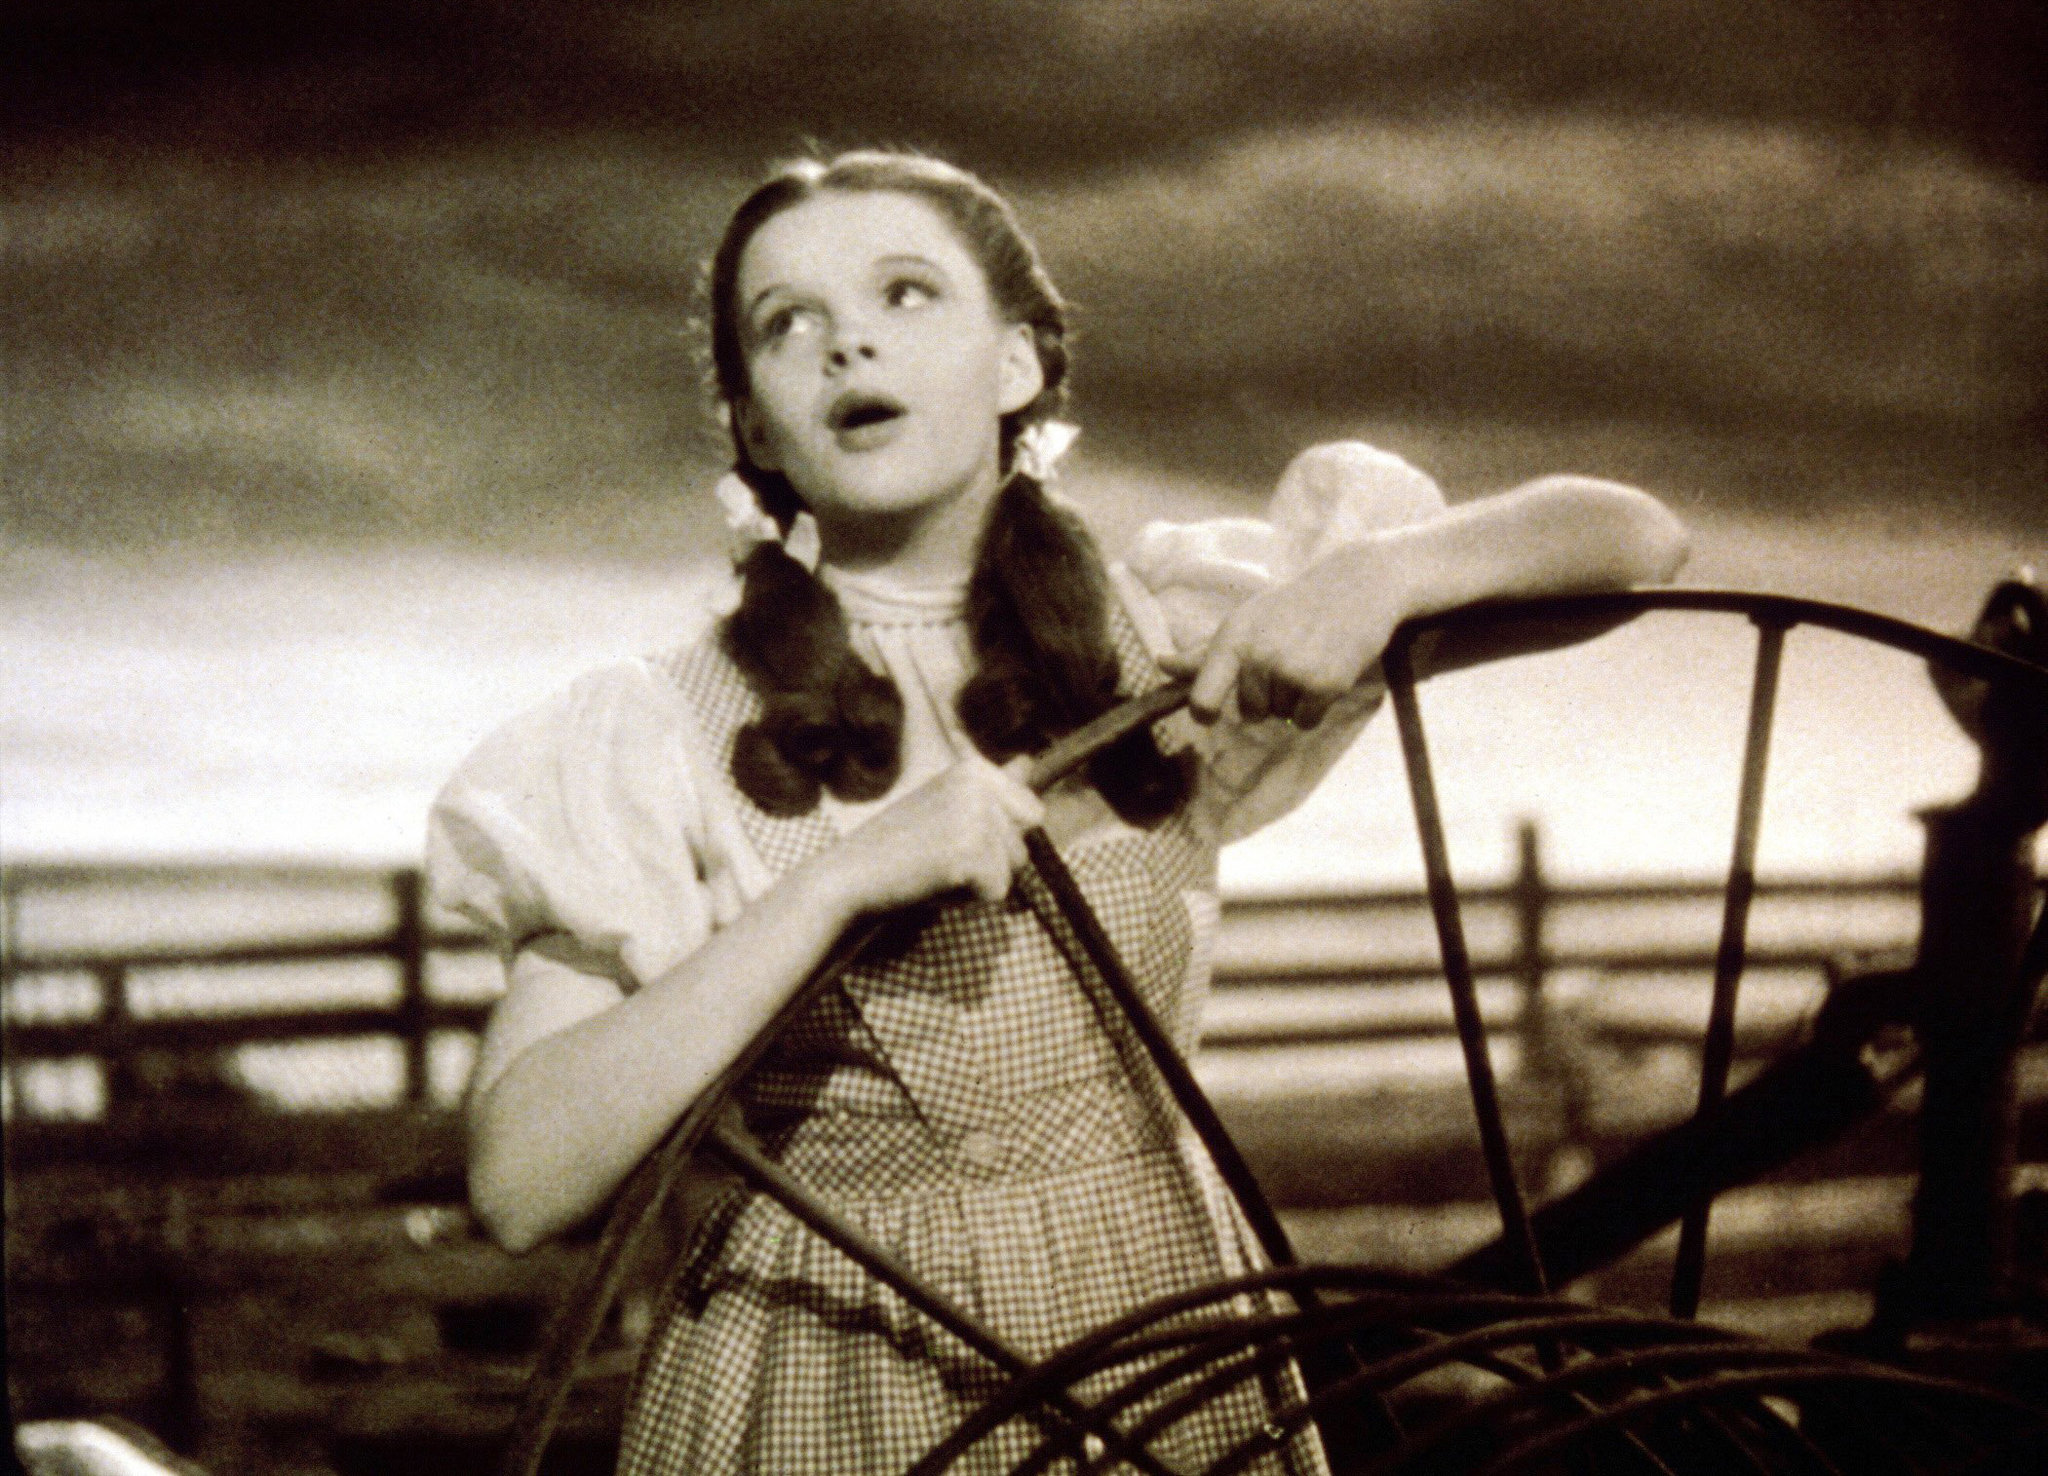 Judy Garland in Gingham